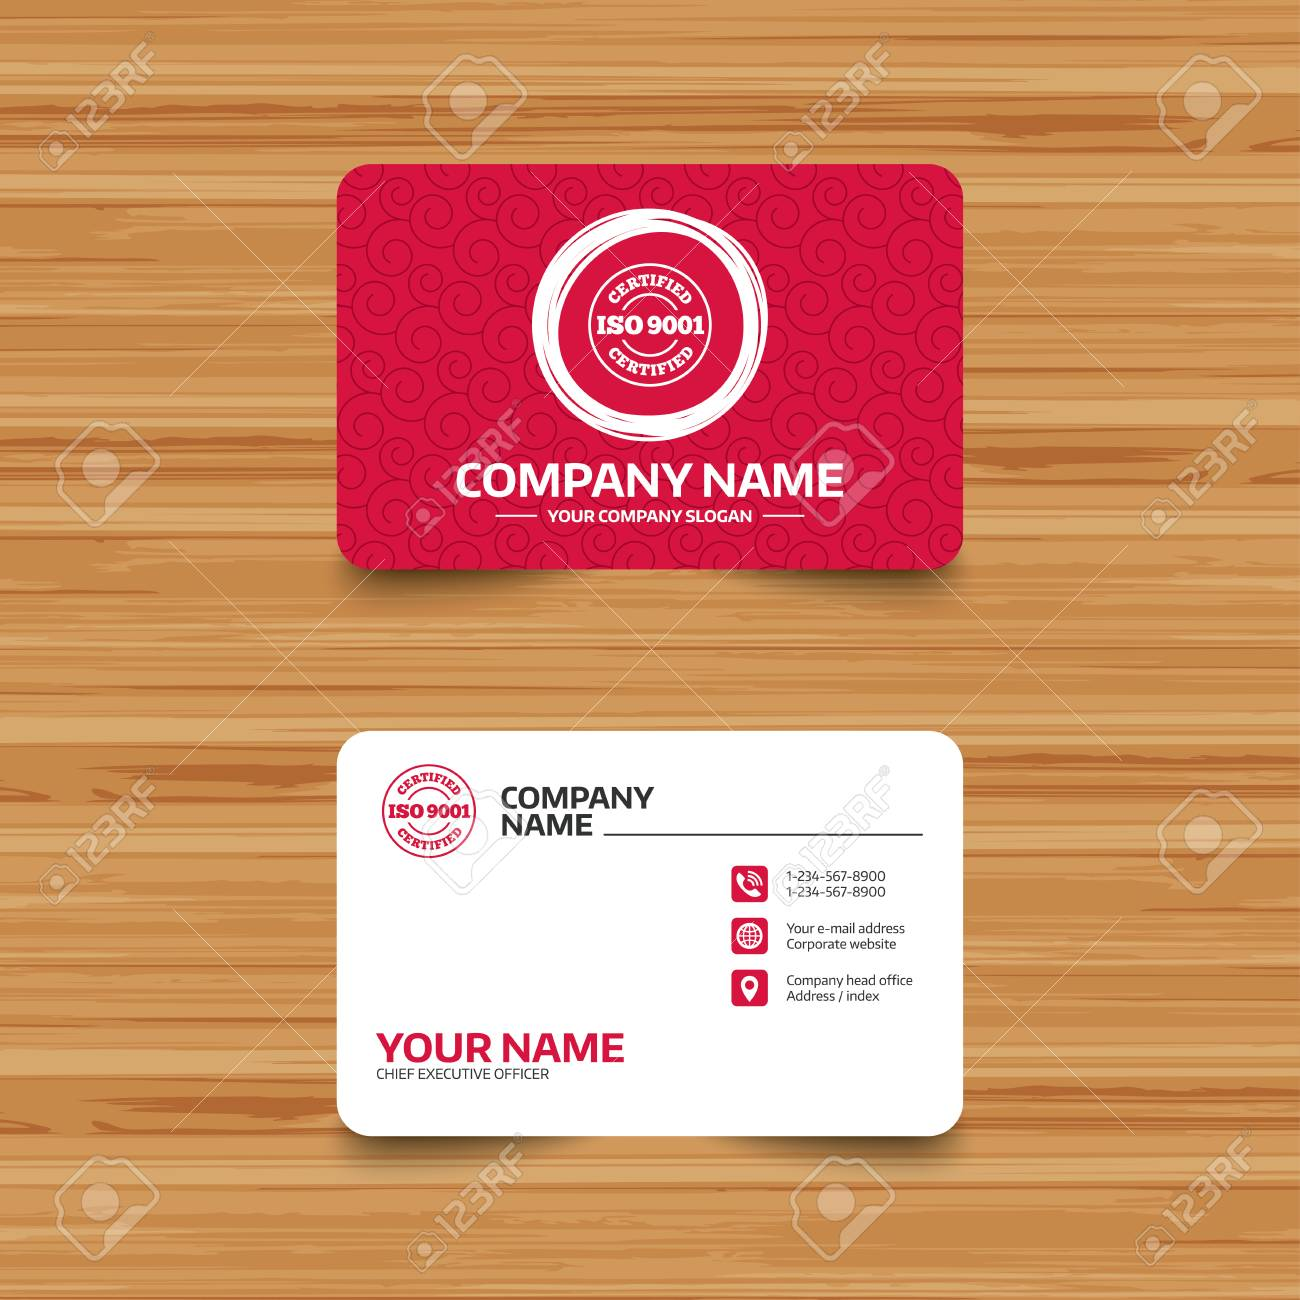 Business Card Template With Texture Iso 9001 Certified Sign